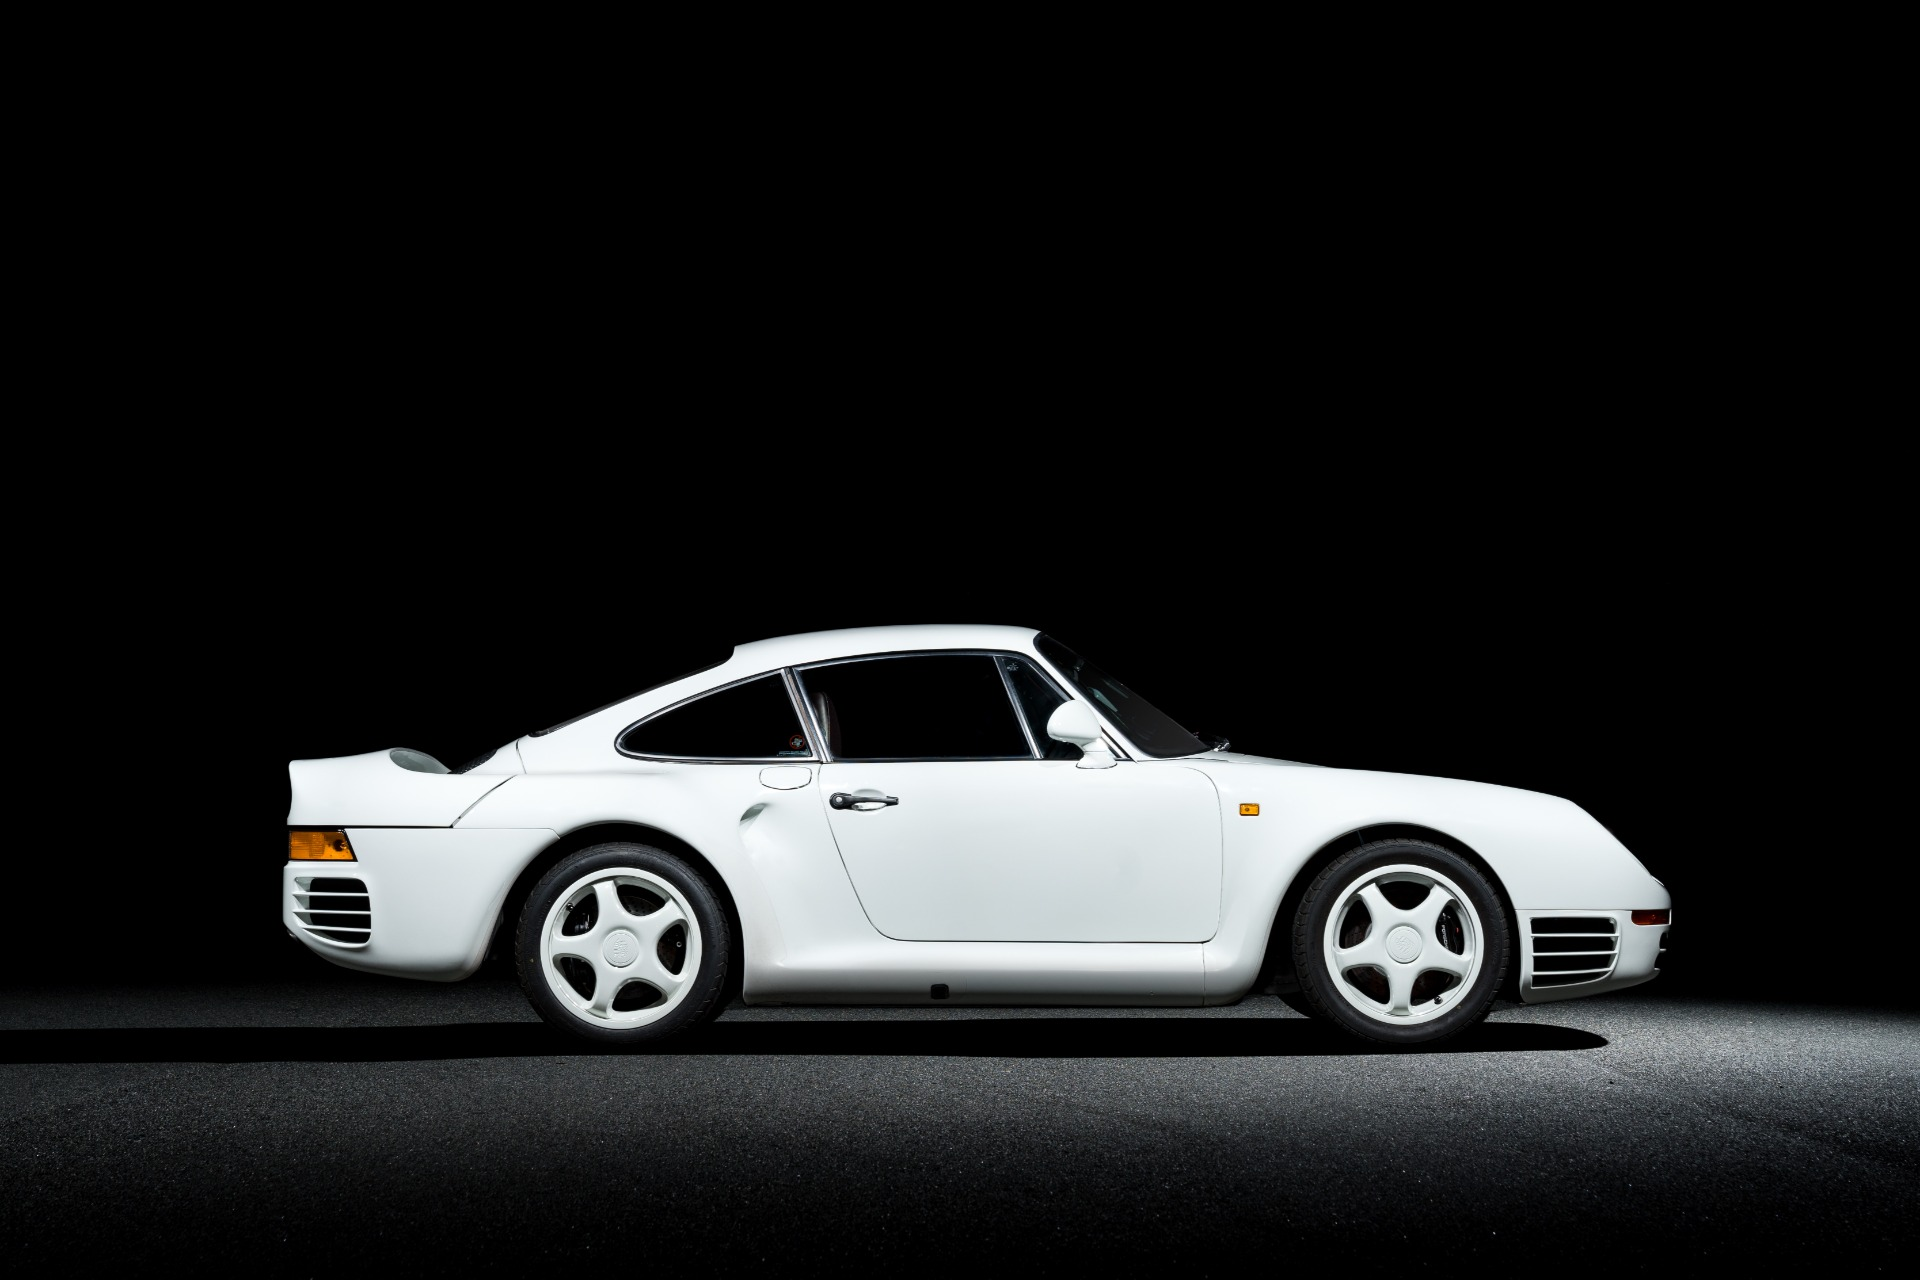 Used 1988 Porsche 959 KOMFORT COUPE / AWD / 6-SPEED MANUAL / ORIGINAL SUPERCAR for sale $1,399,999 at Formula Imports in Charlotte NC 28227 3